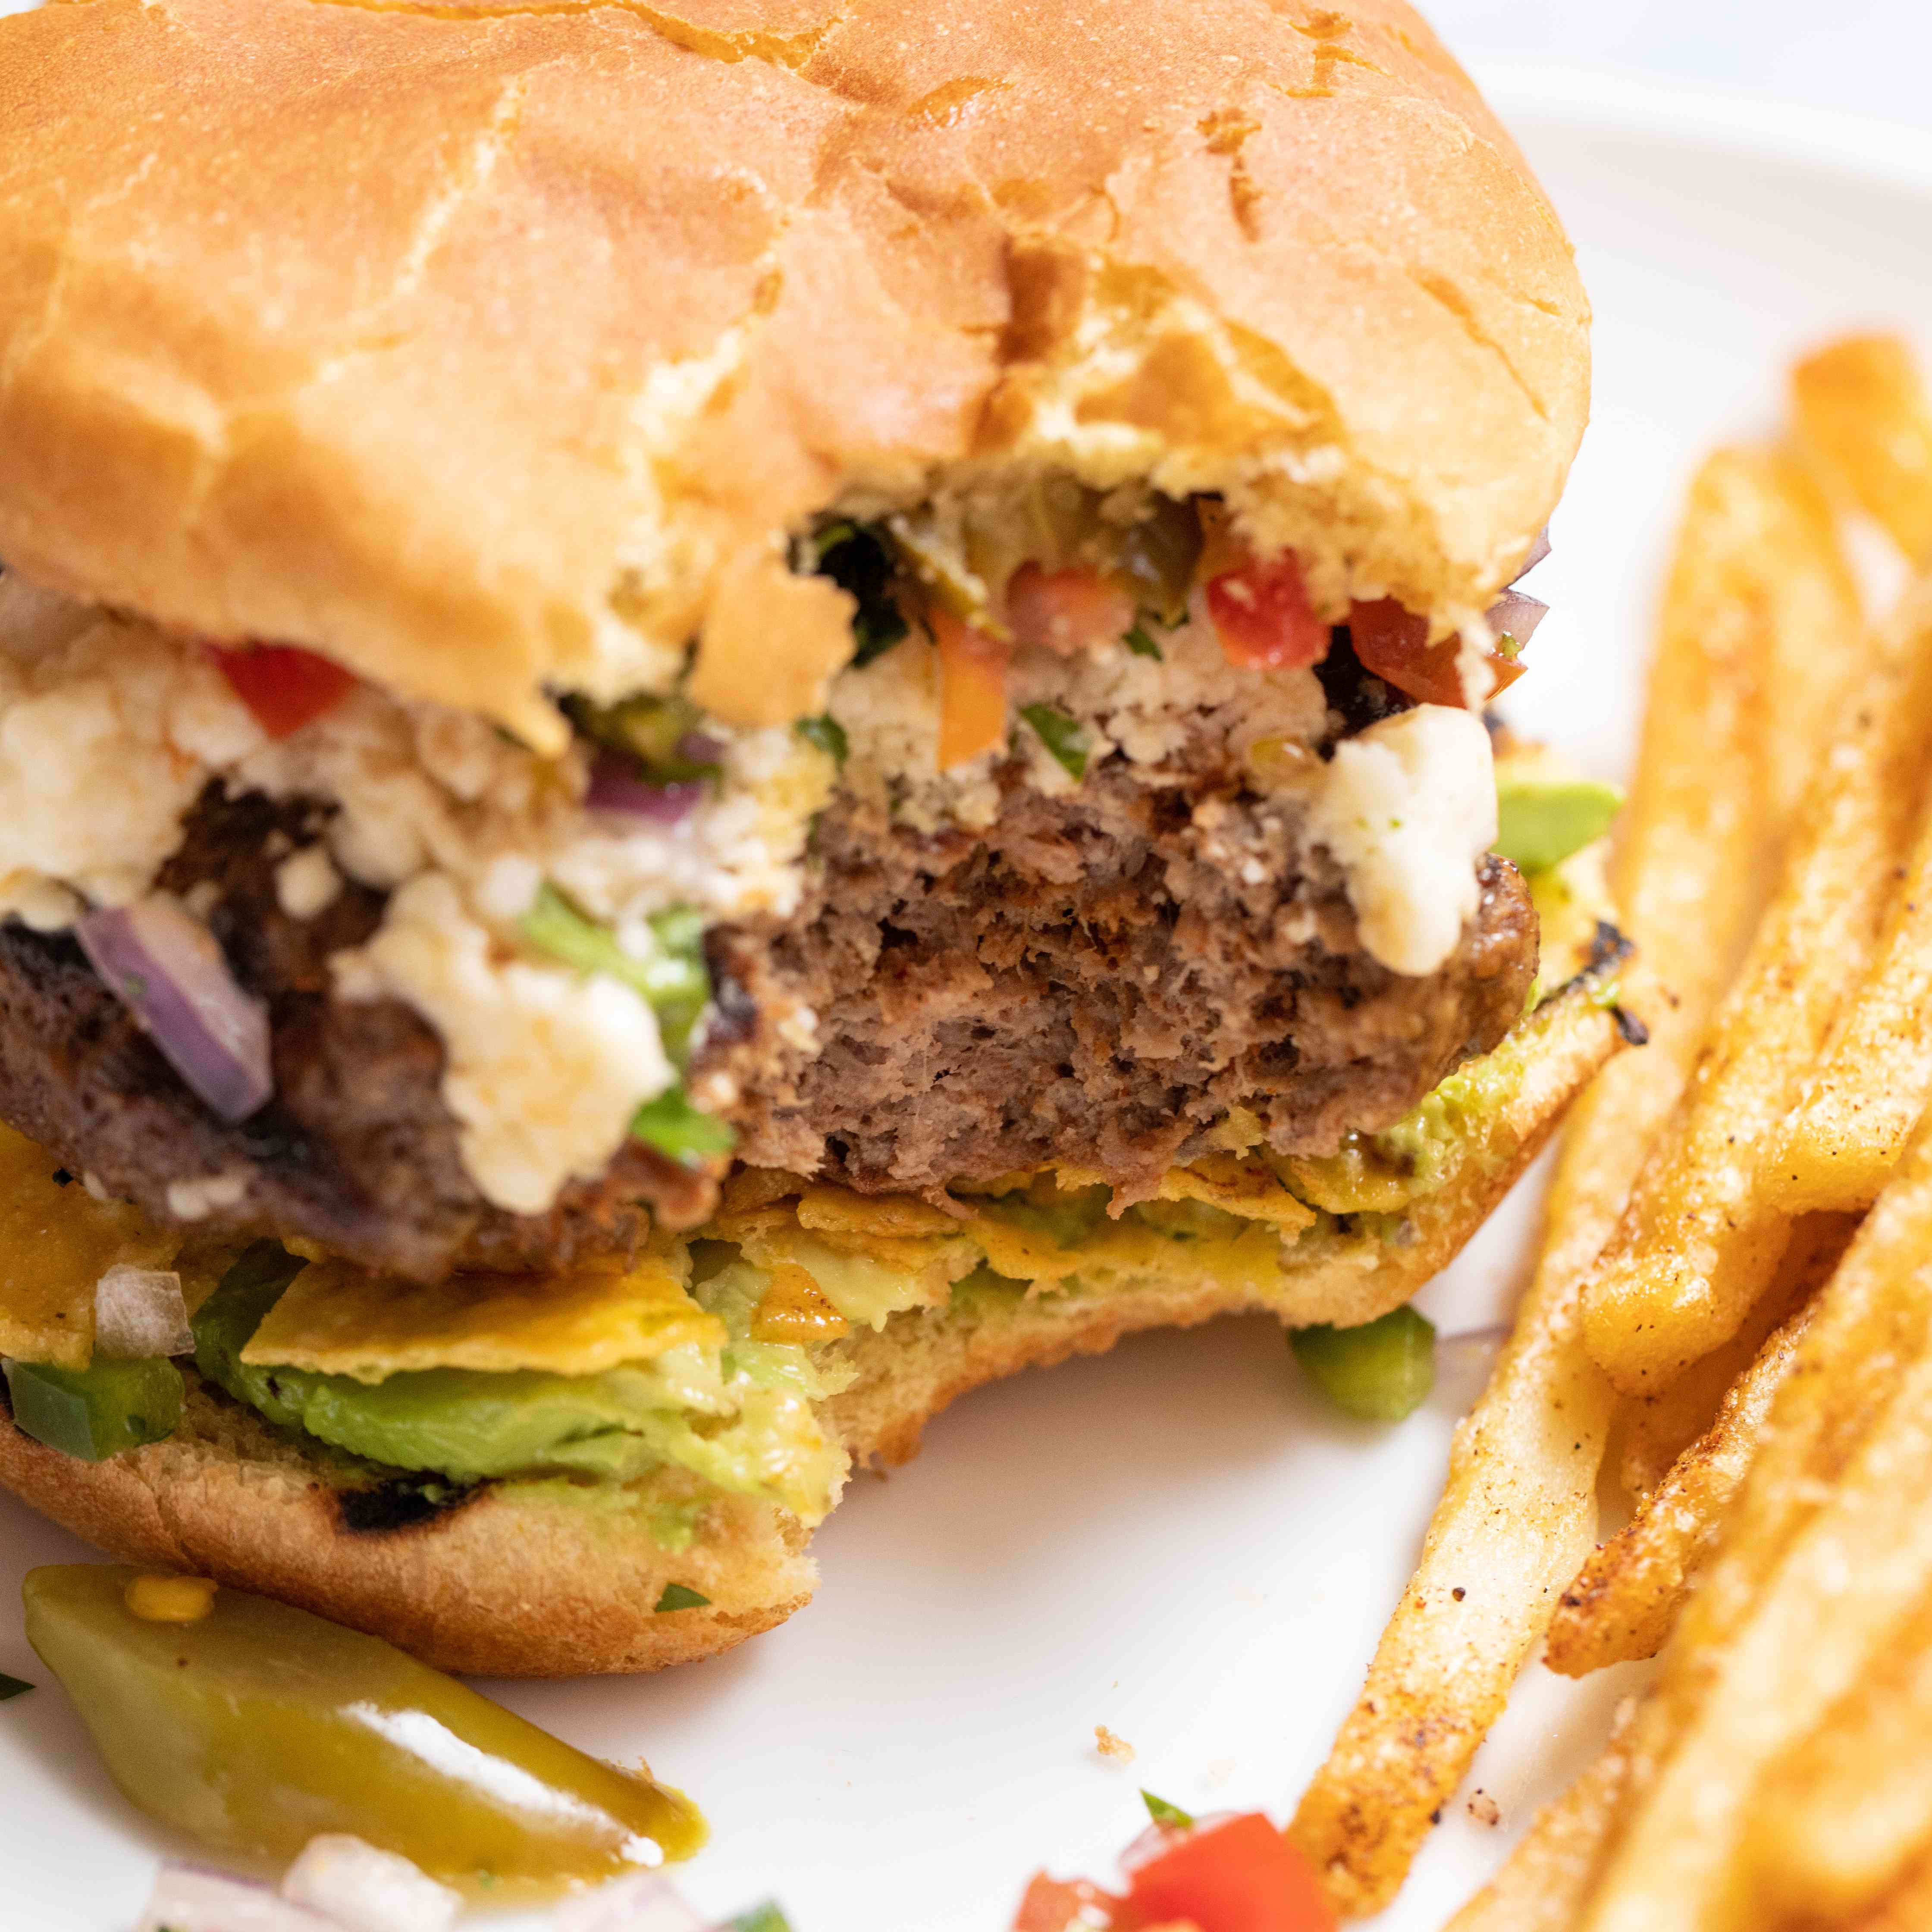 Mexican burger on a plate with a bite taken out and fries on the side.